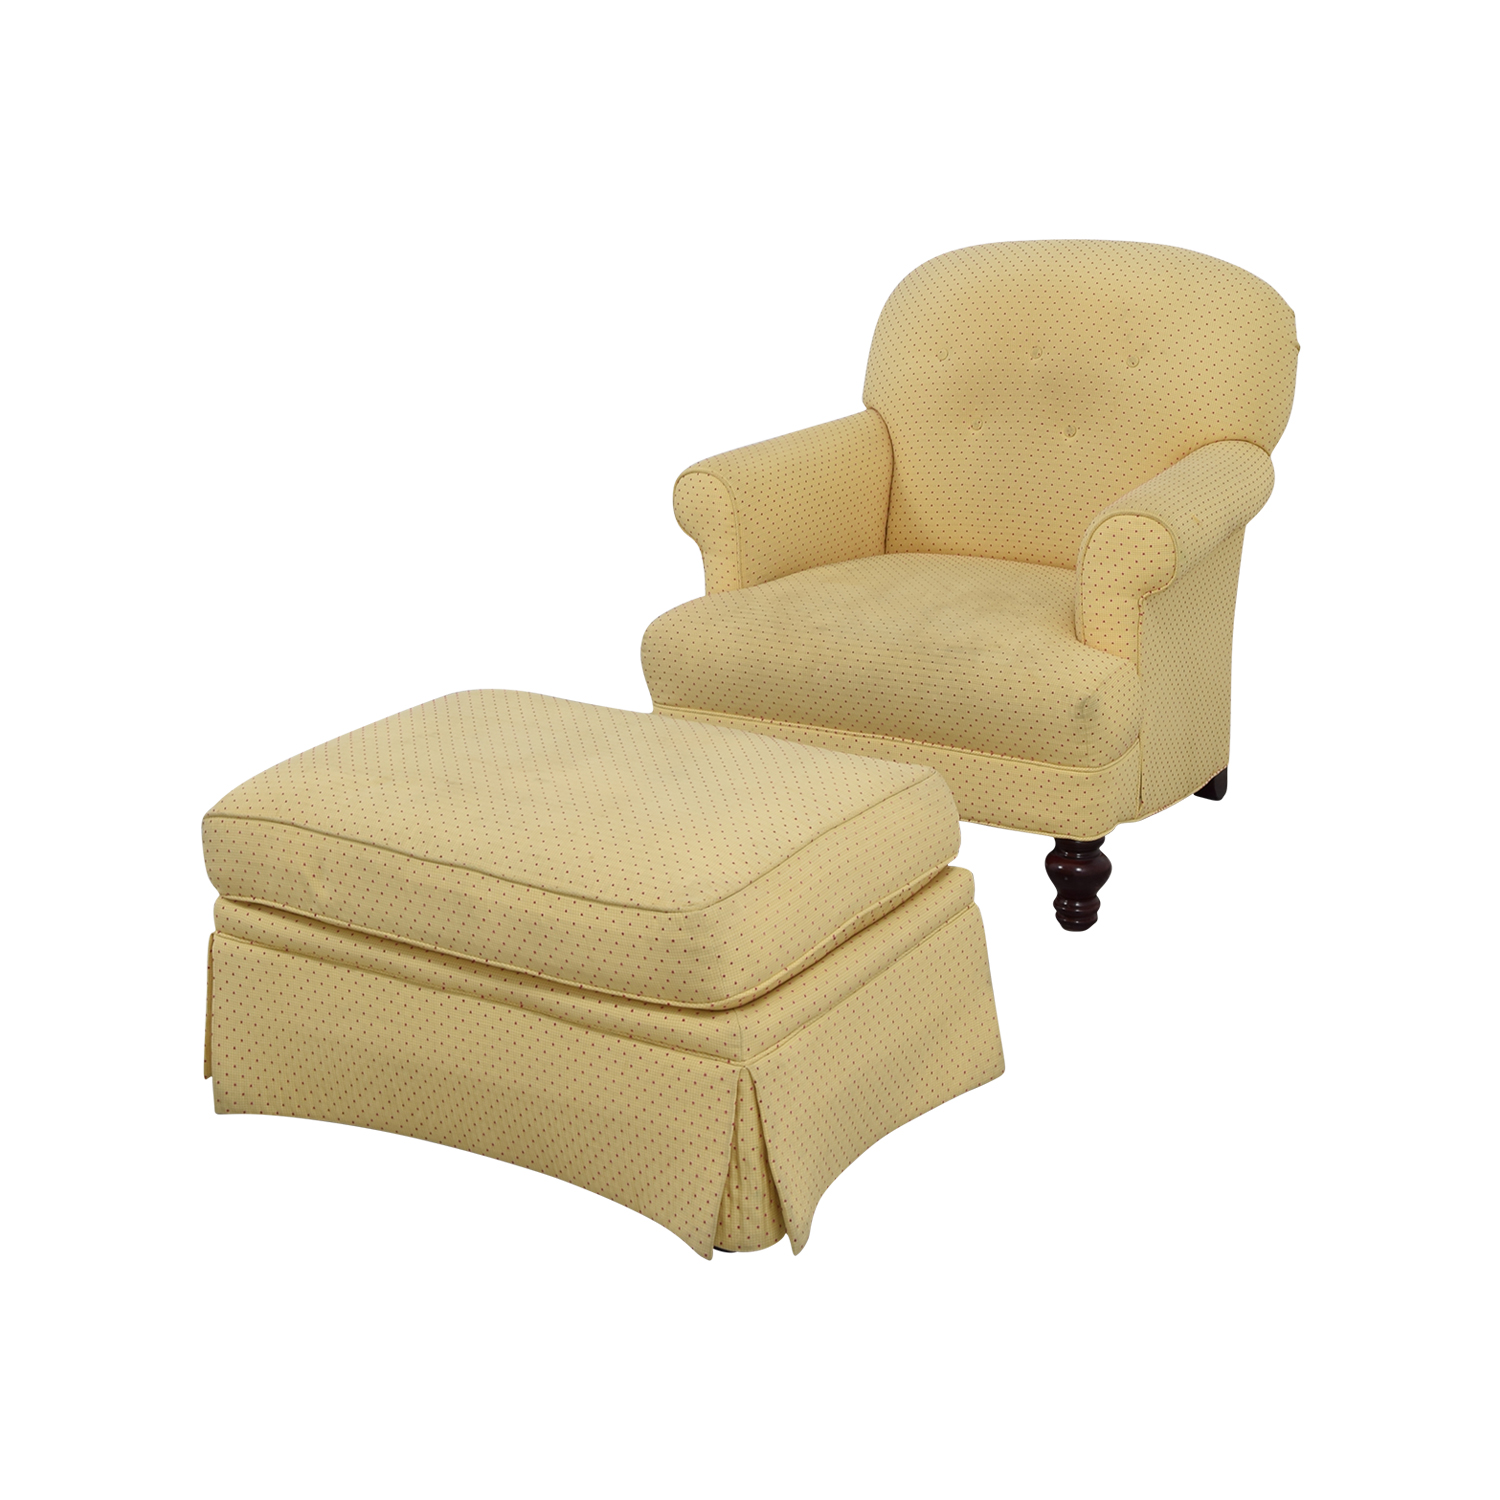 Yellow Arm Chair with Ottoman nj